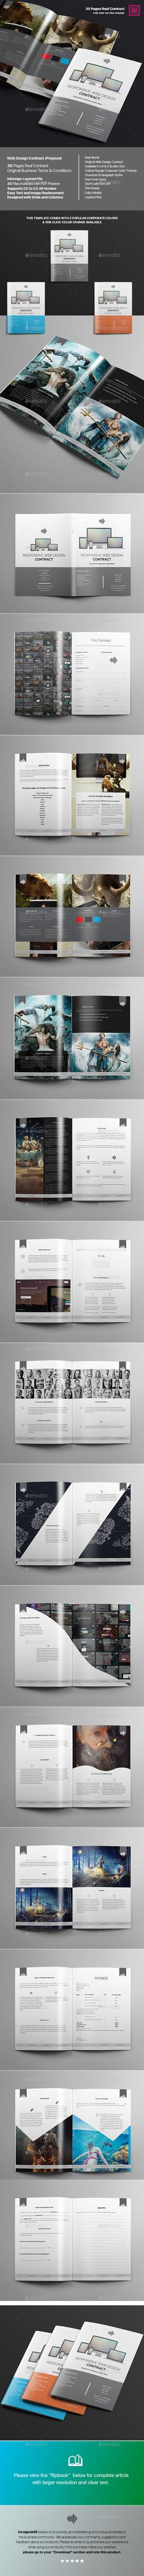 Simple And Minimal Proposal Template | Download:  Http://graphicriver.net/item/simple-And-Minimal-Proposal-Template/1010… |  Proposal & Invoice Templates